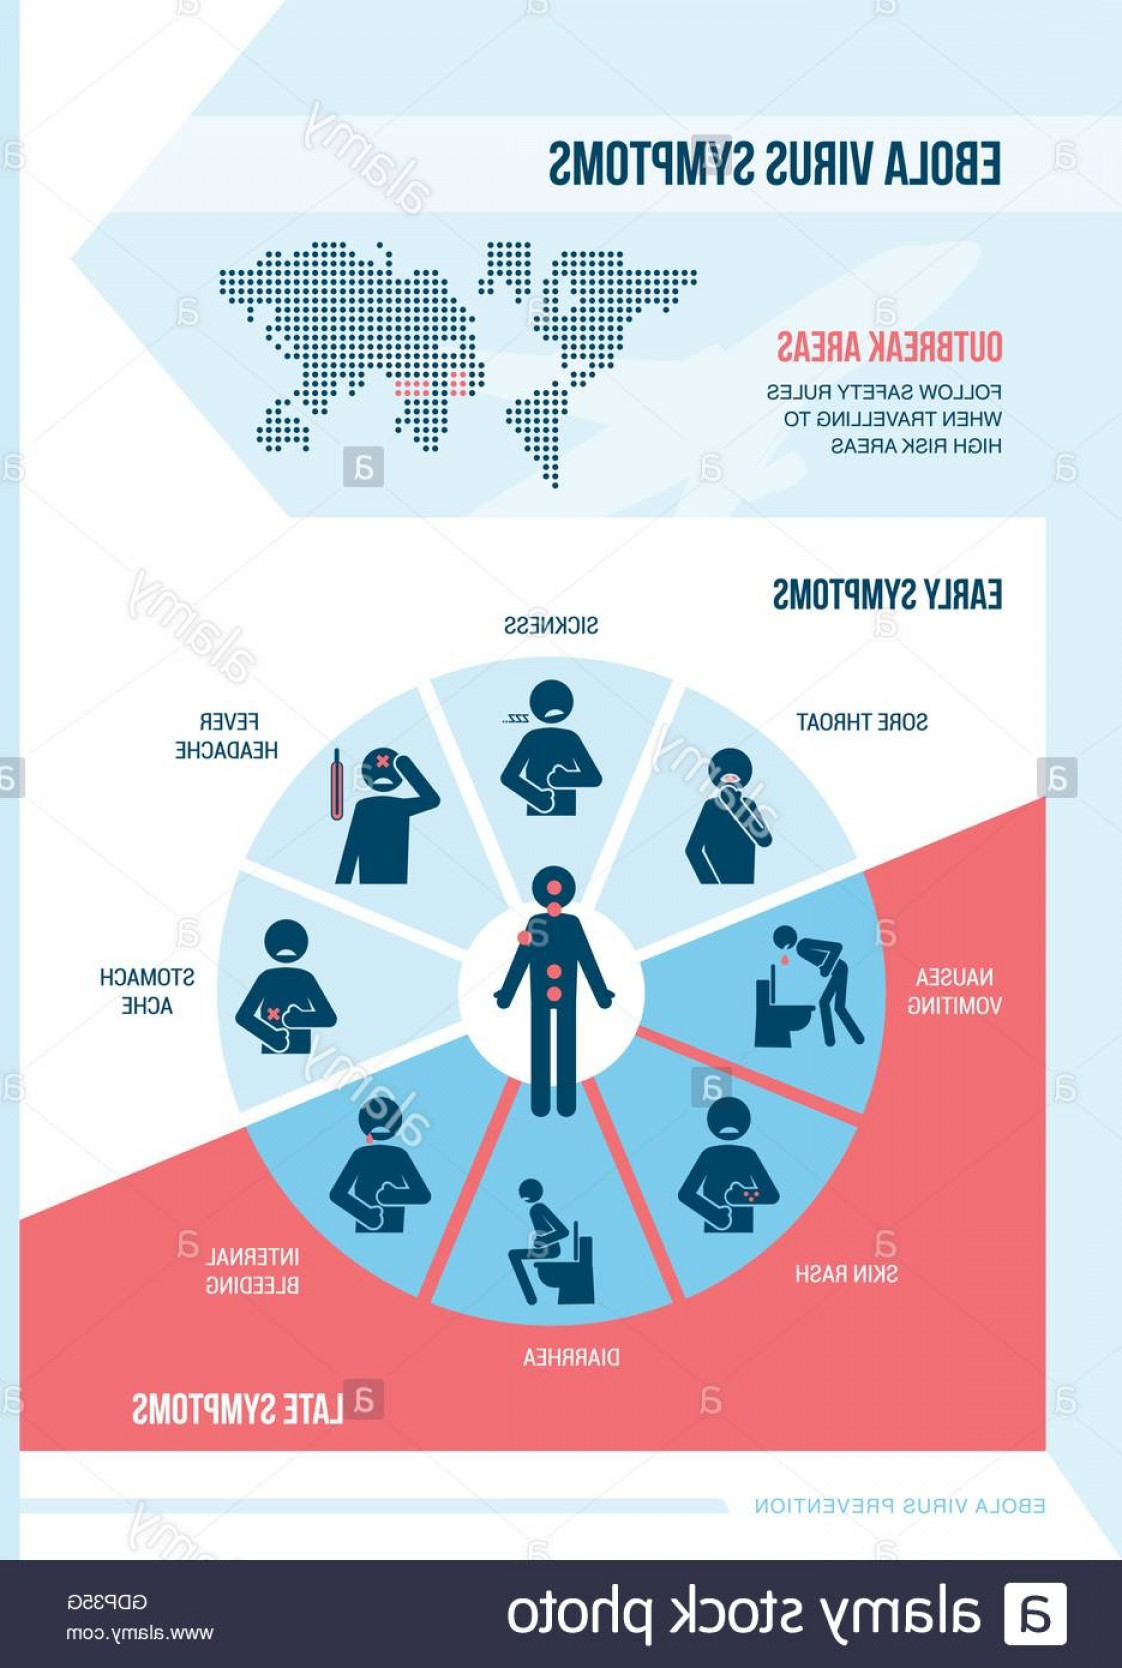 Vector Virus That Causes: Stock Photo Ebola Virus Infection Symptoms With Stick Figures And World Map